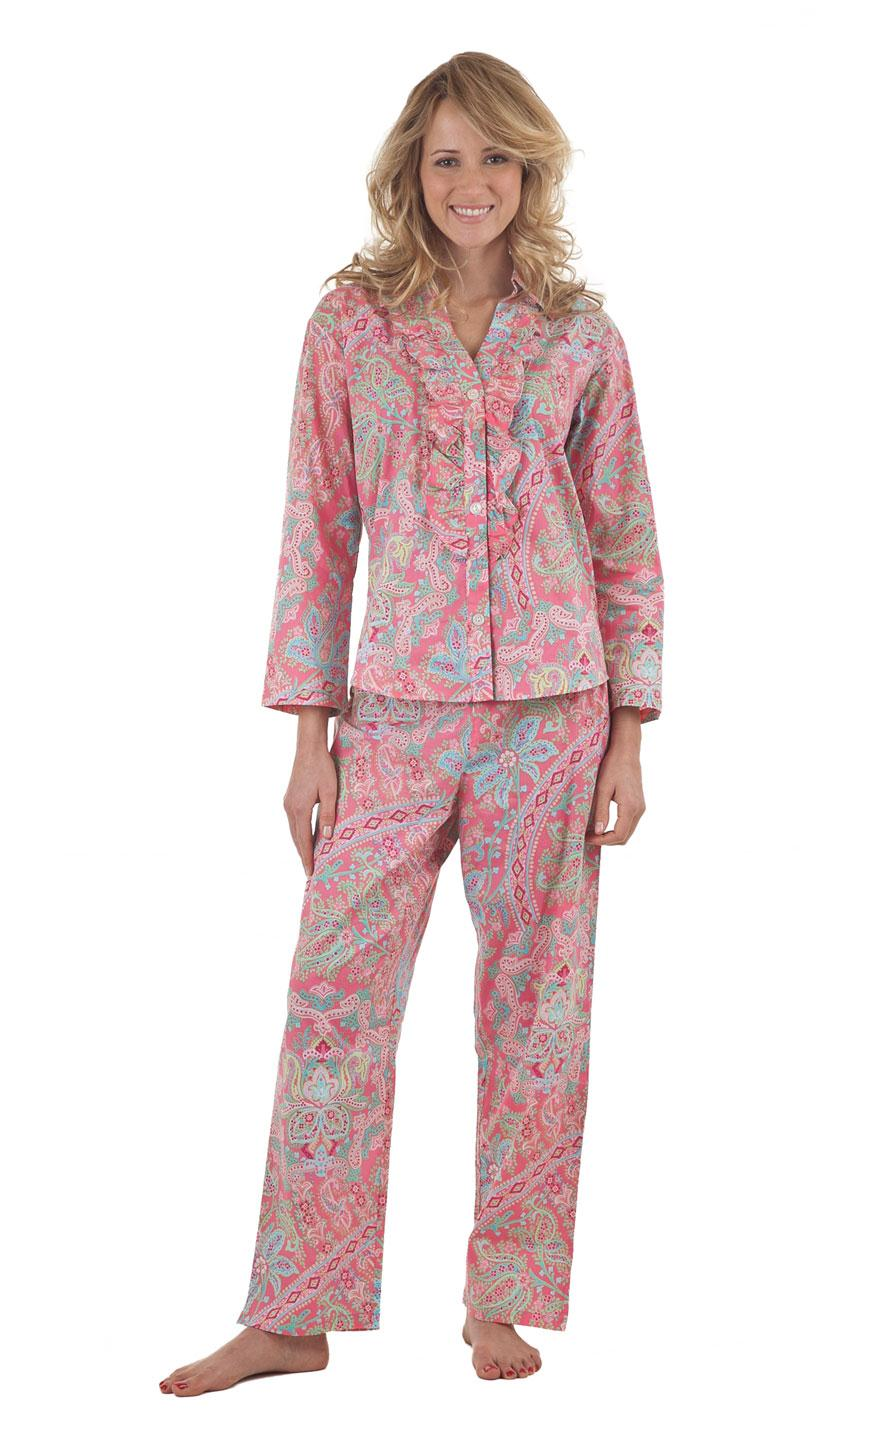 ladies night dress pyjamas - photo #4